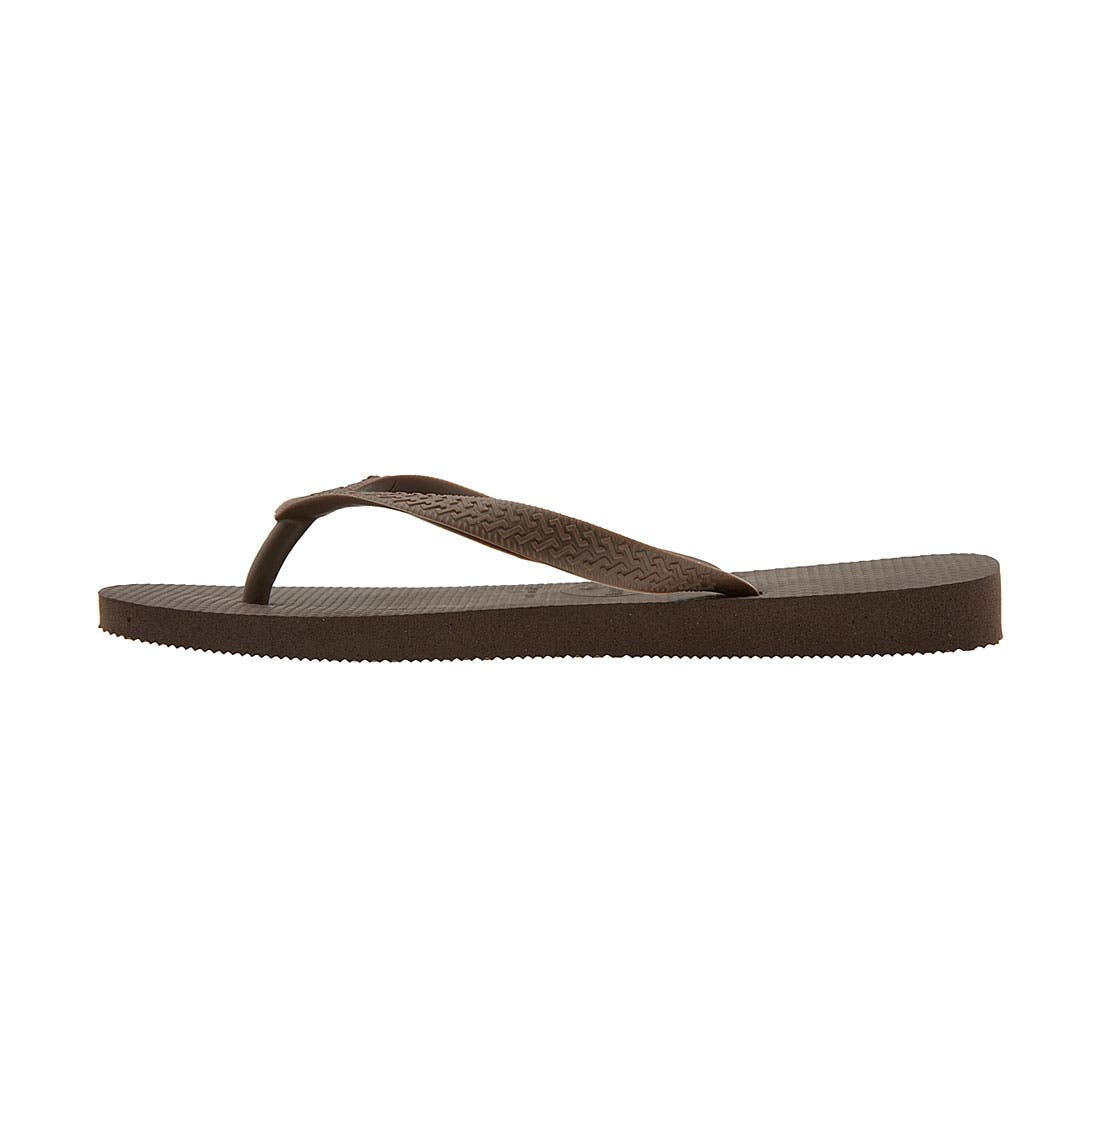 Alternate Image 2  - Havaianas 'Top' Sandal (Women)